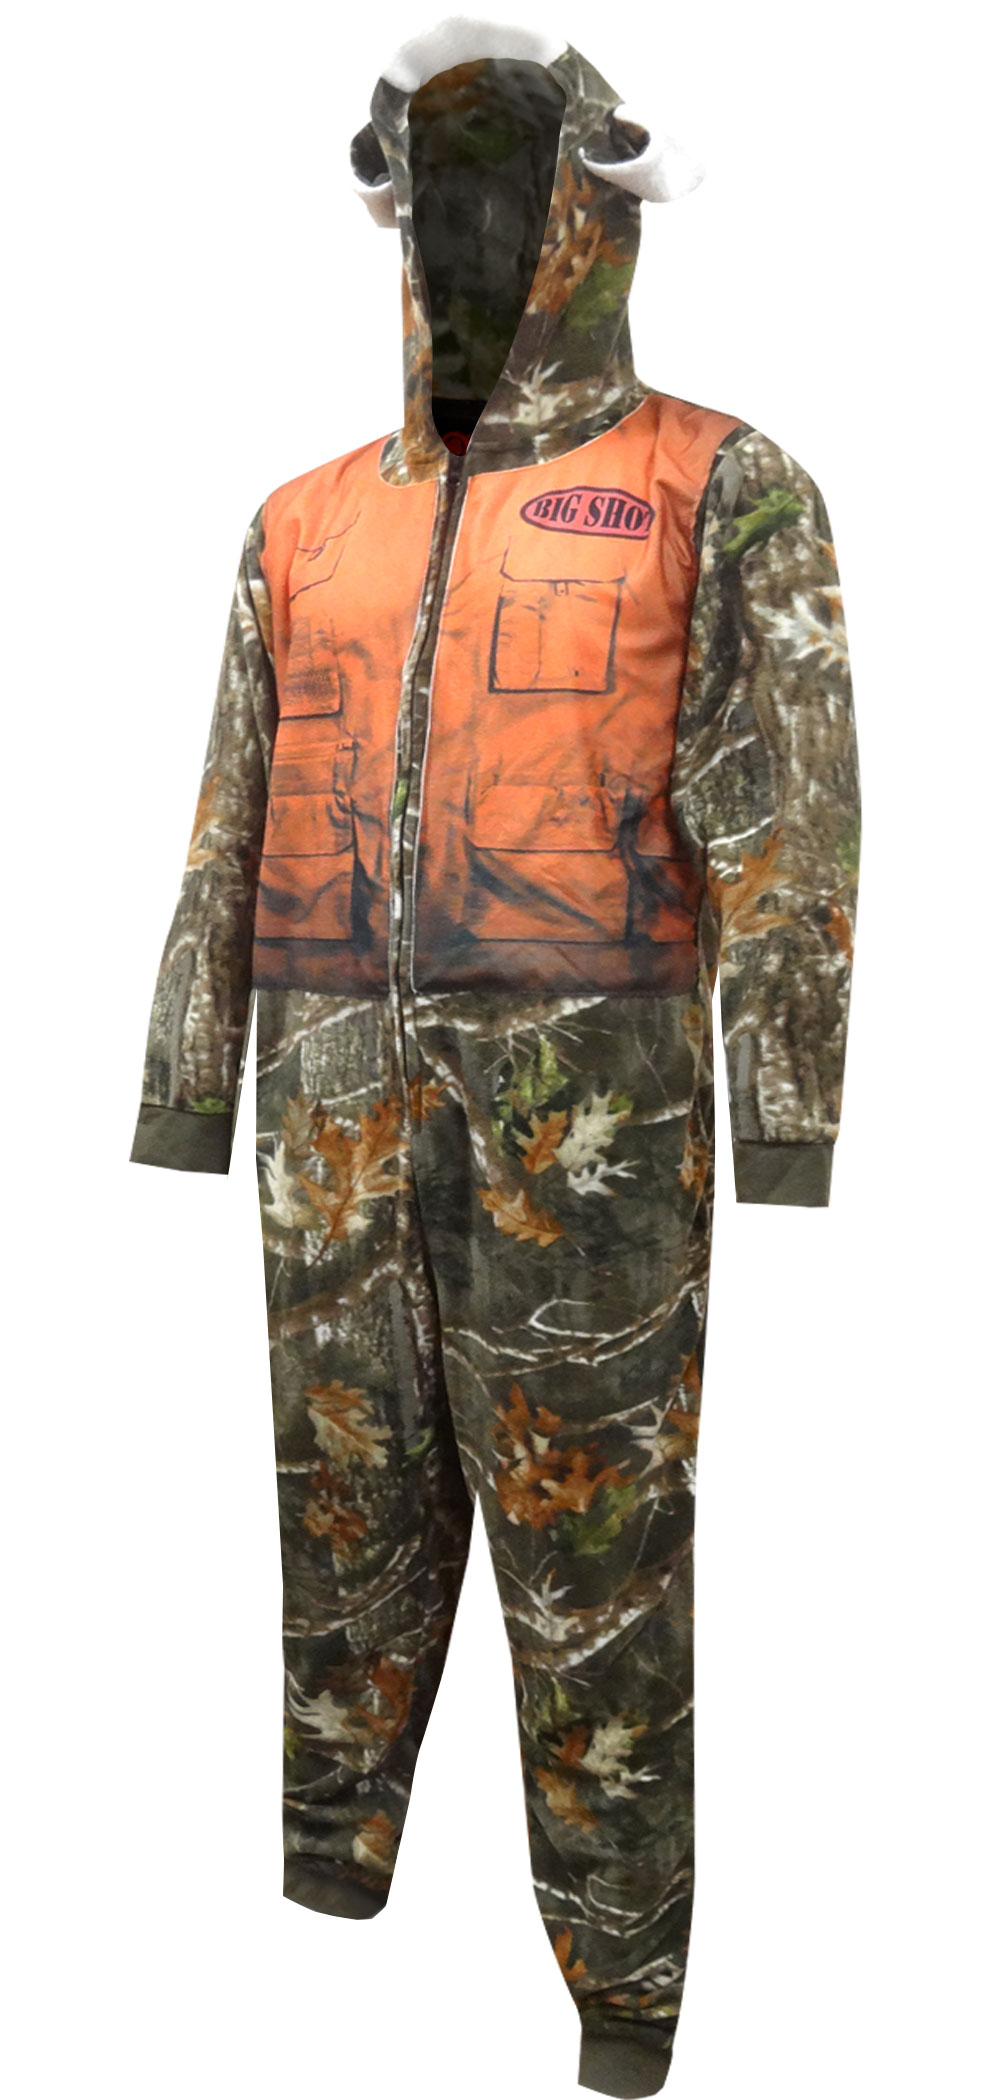 Image of Hunter Camo Big Shot Union Suit One Piece Pajama for men